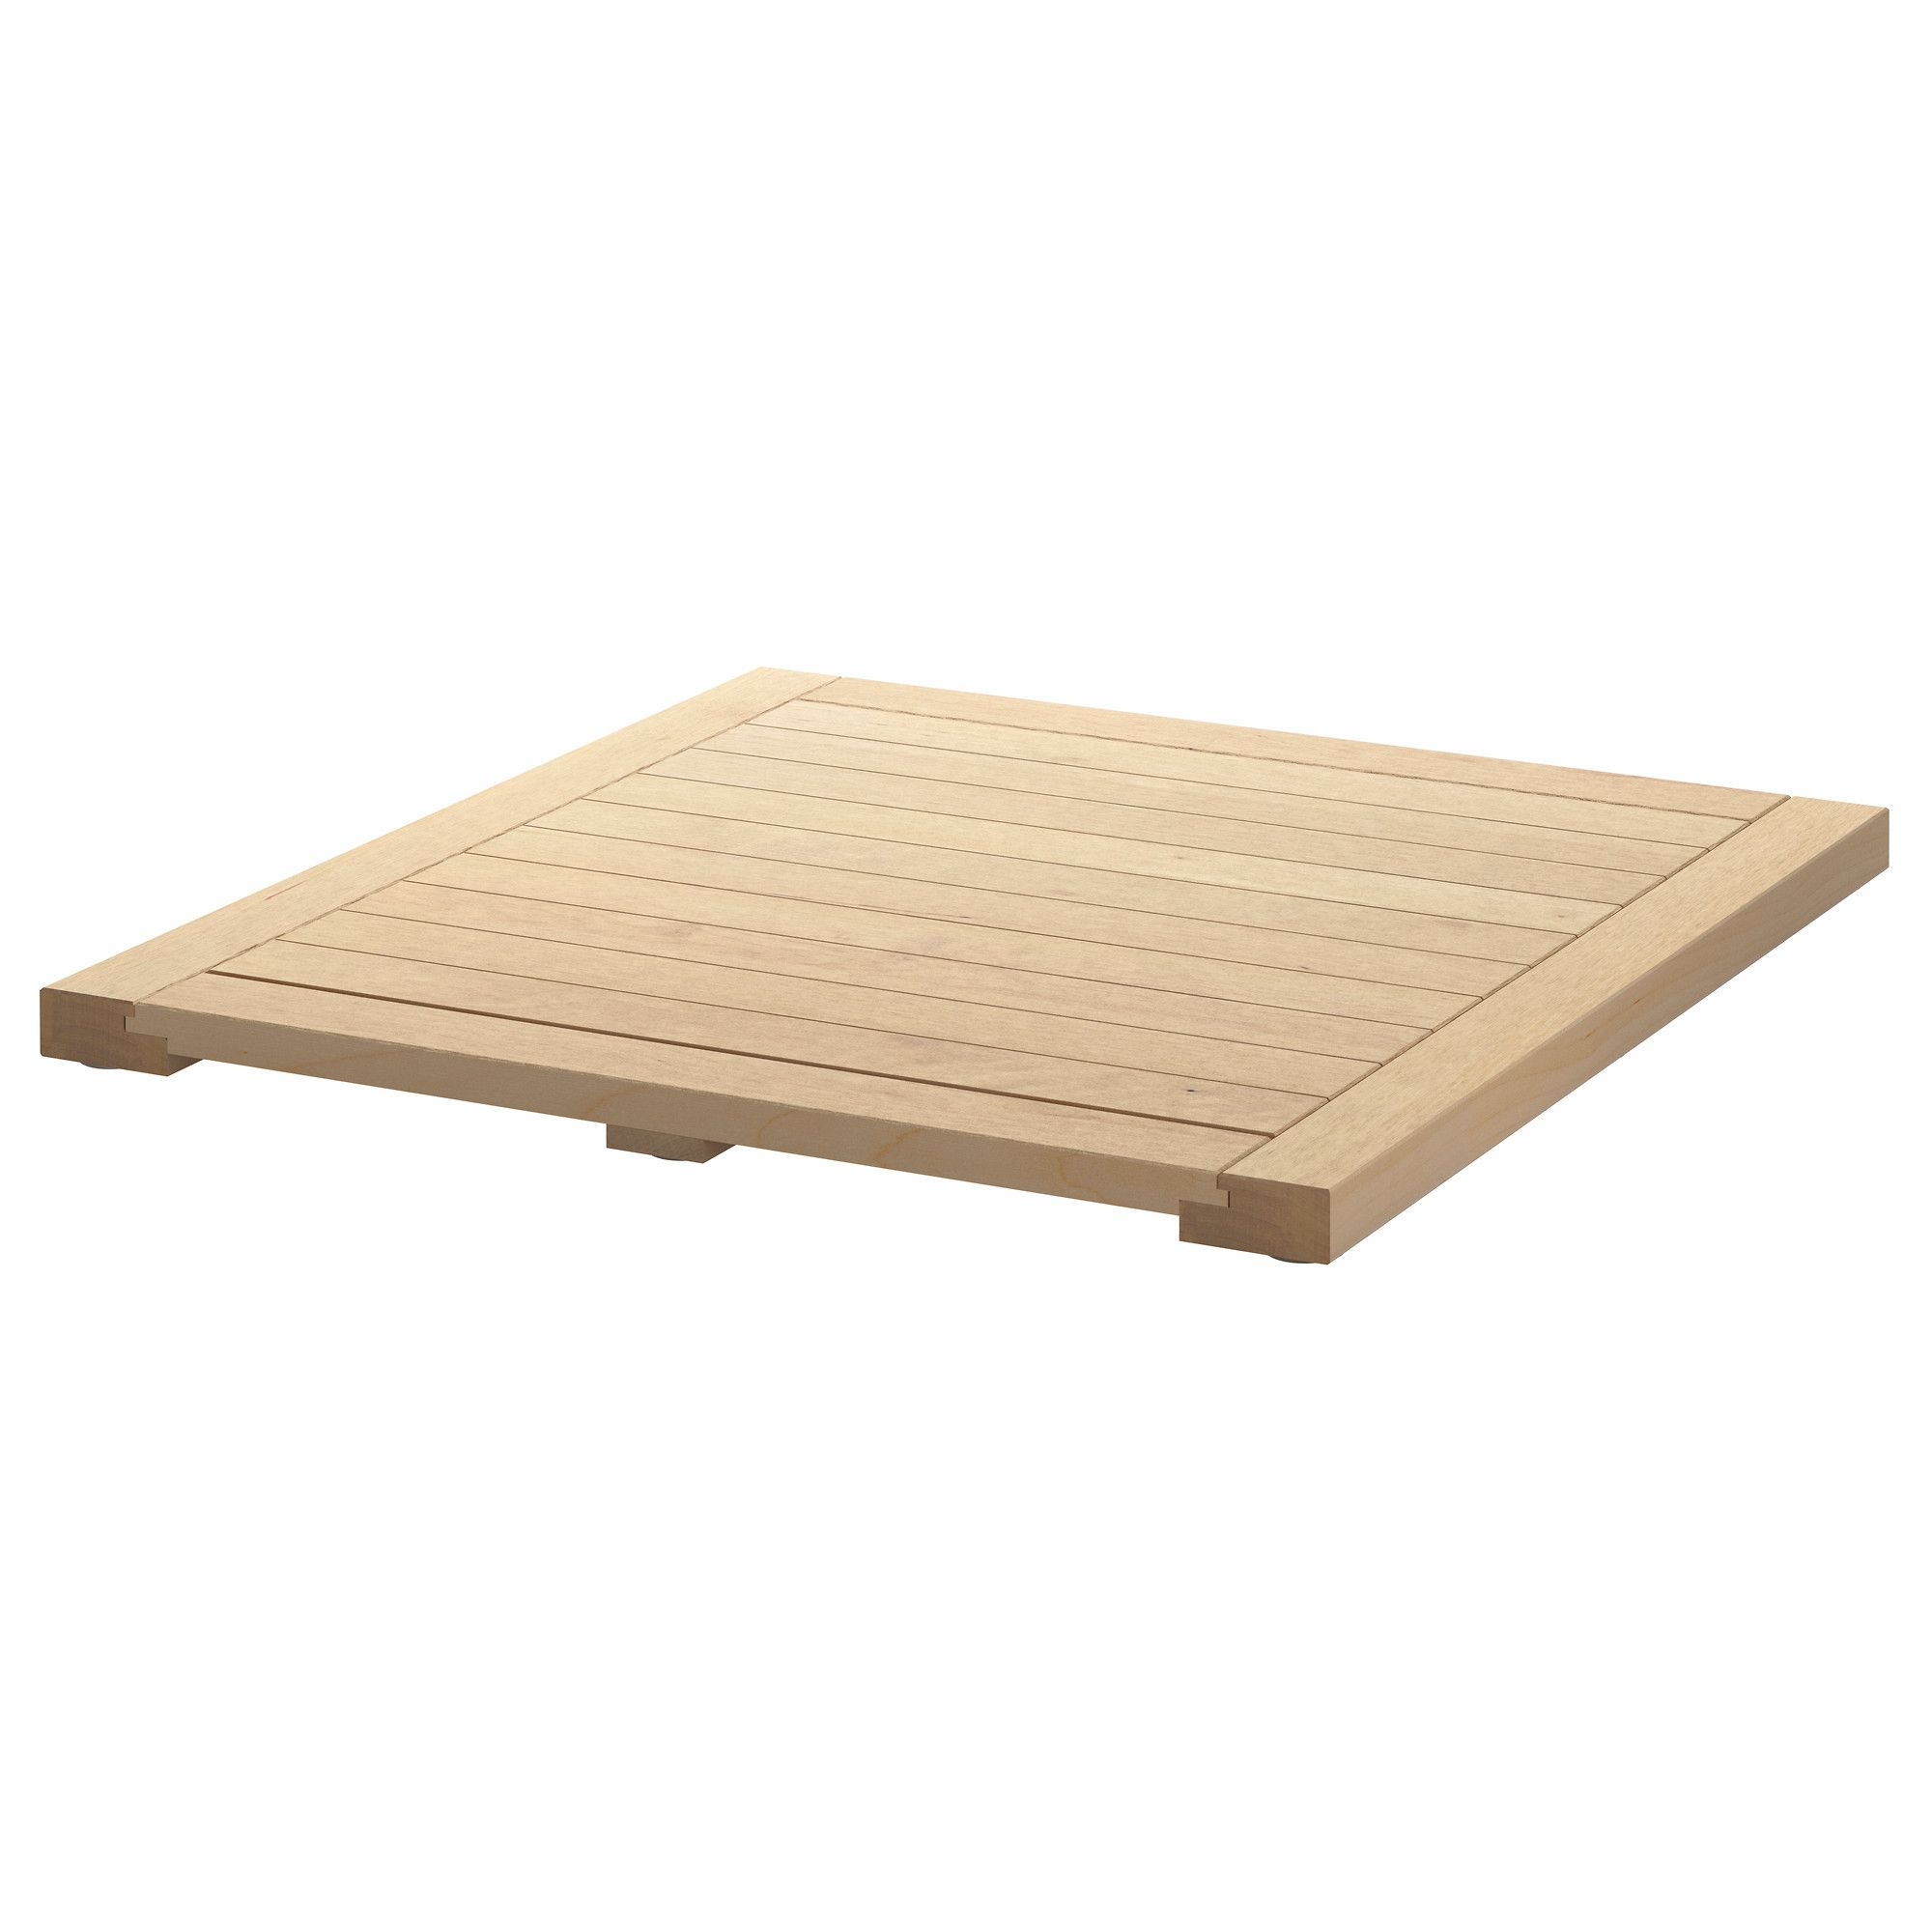 Molger Ikea Molger Decking Birch Ikea For Extra Shelving And